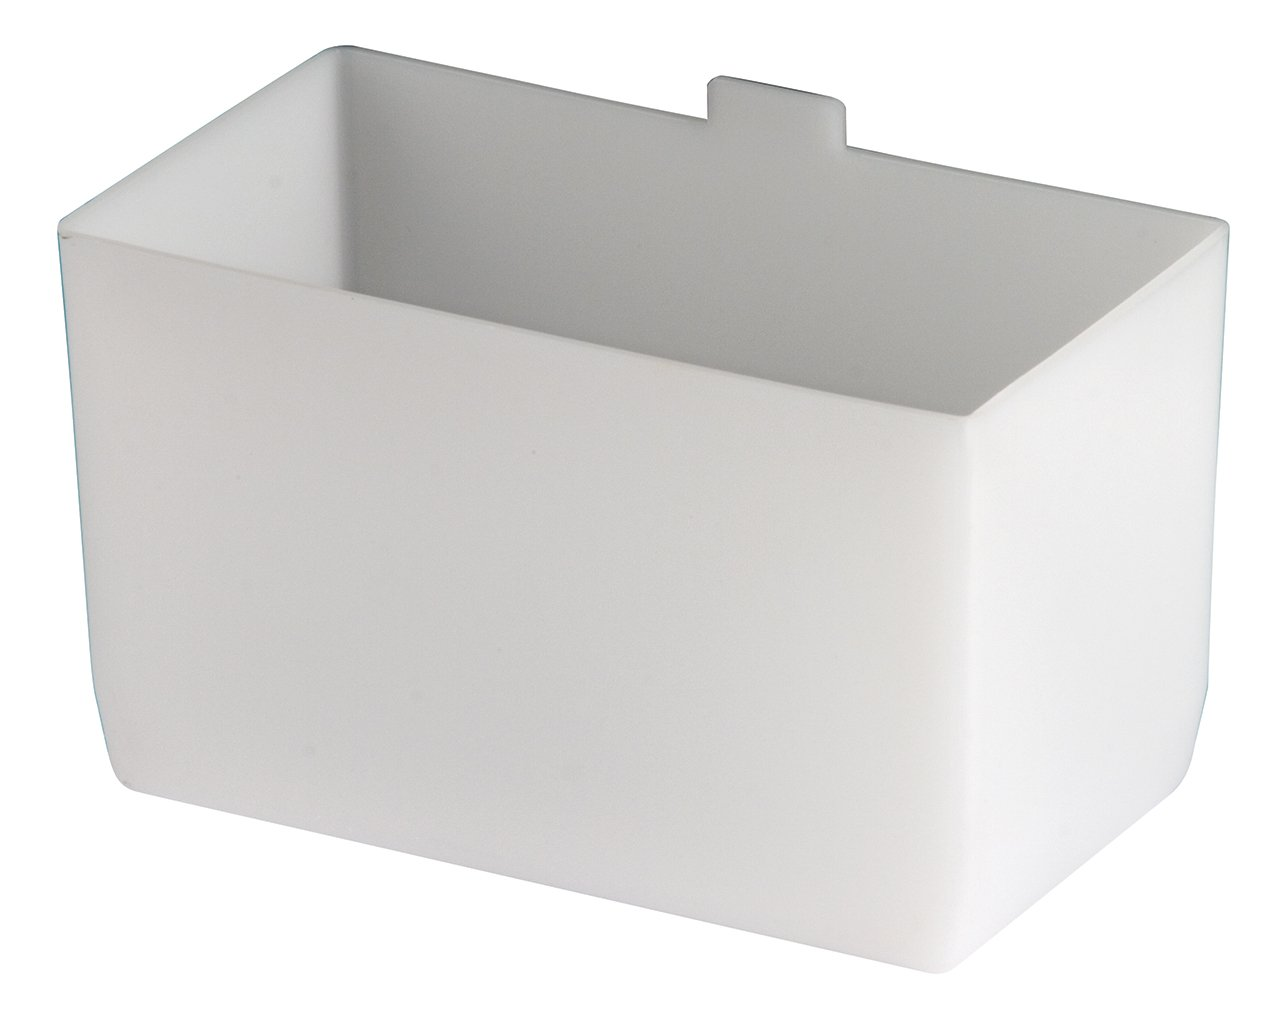 akro-mils 30102 2 – 3 / 4 Inch by 5インチby 3-inch Large Bin Cup forシェルフビン、ホワイト、24-case B0020A18AY